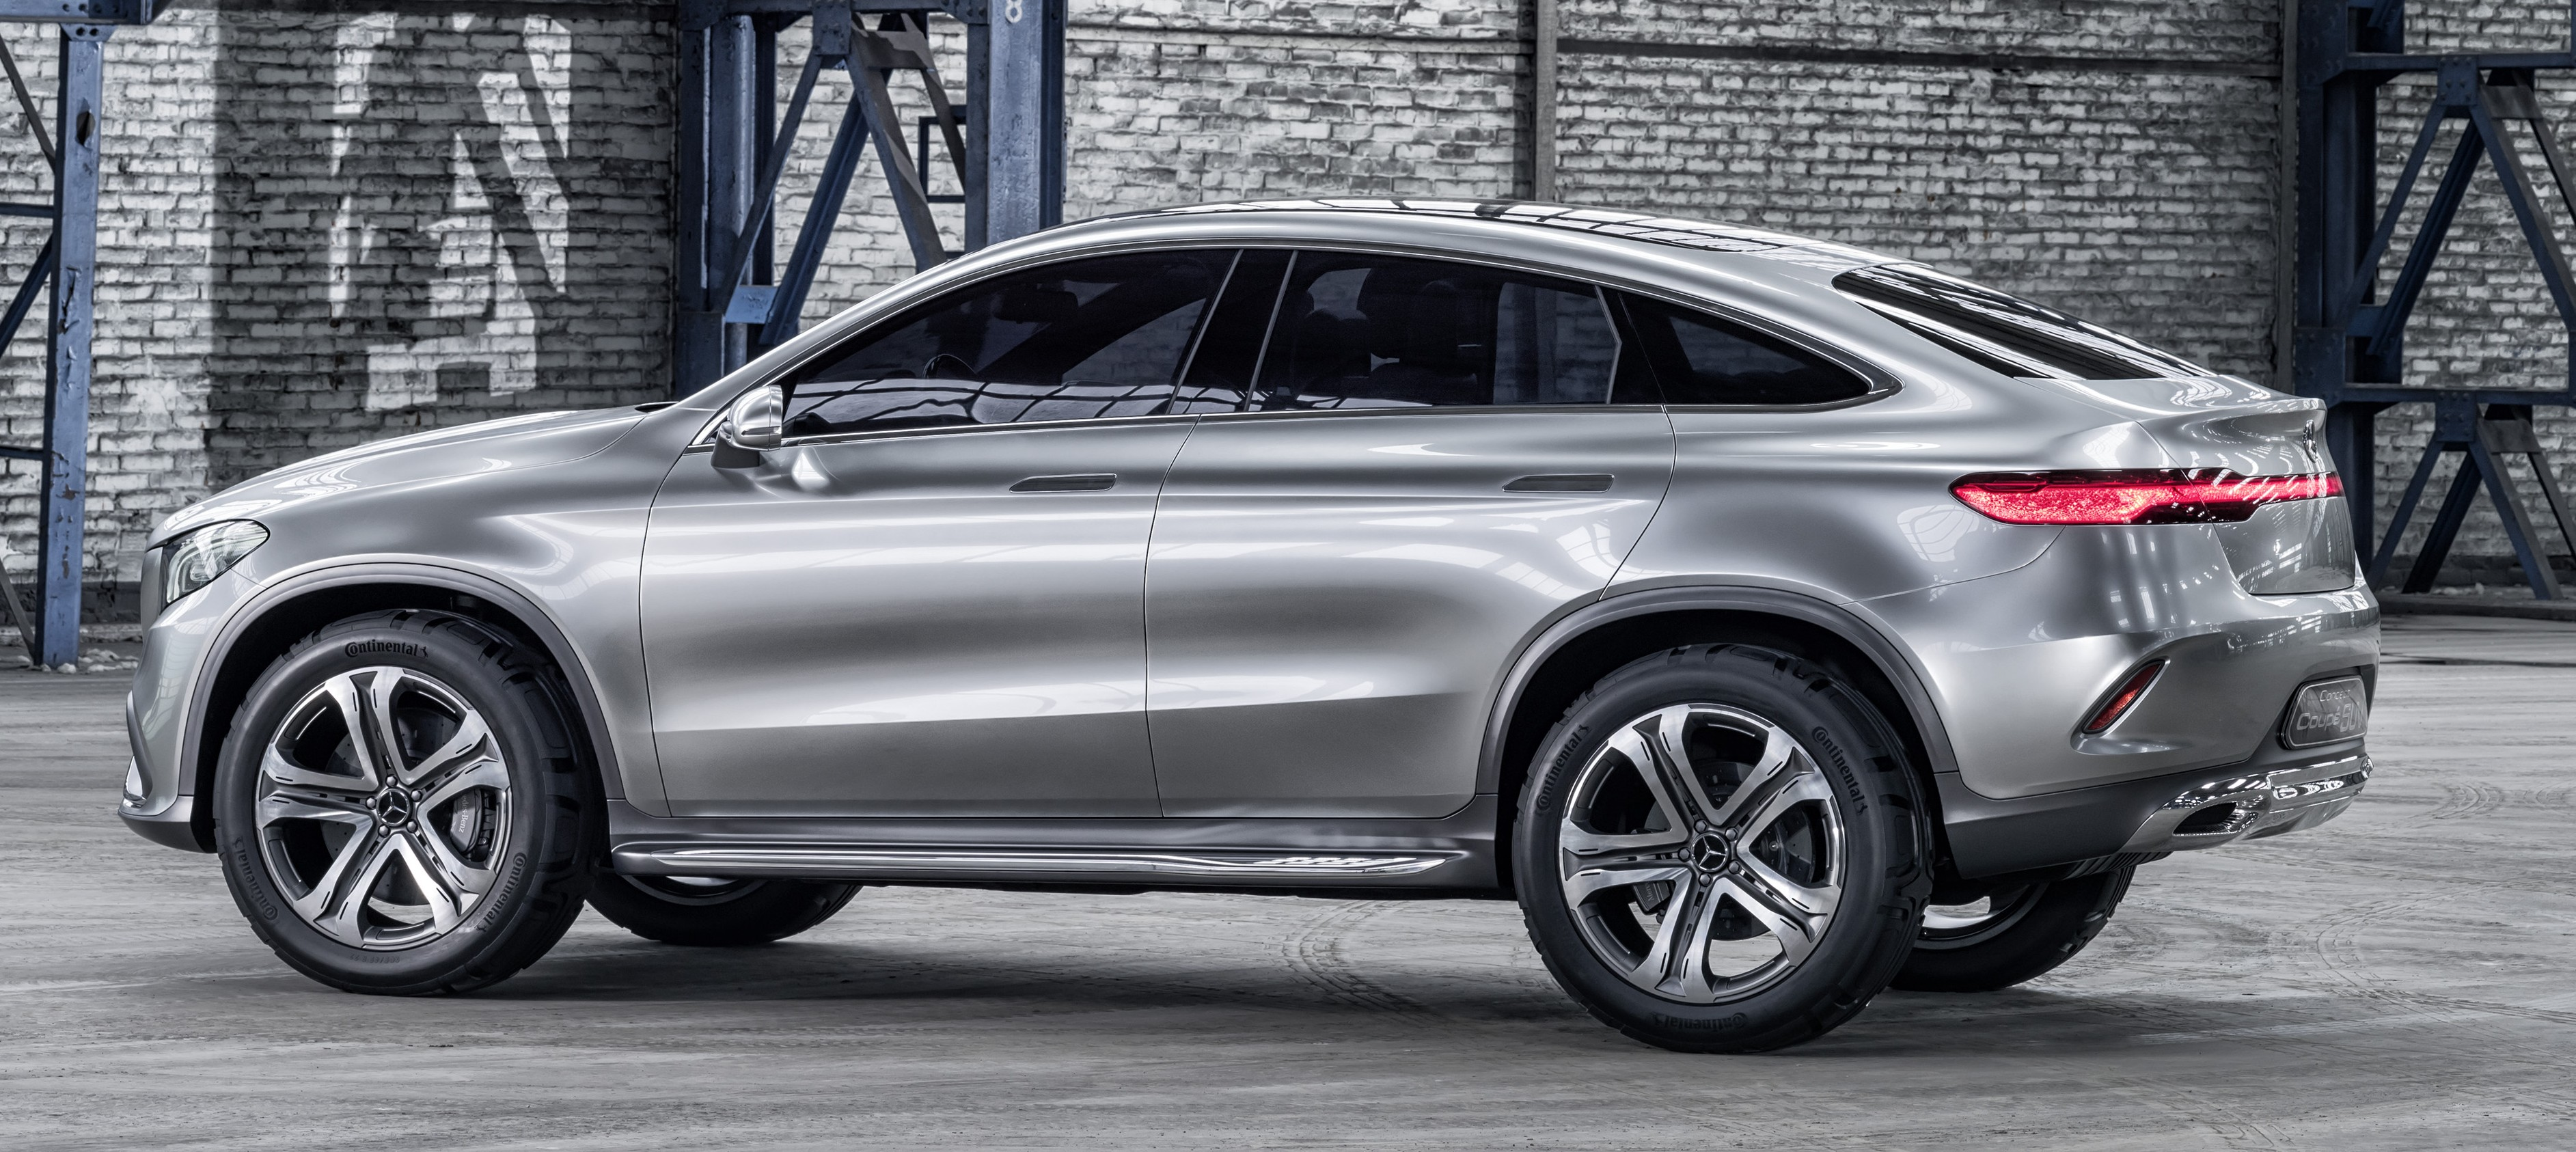 Mercedes benz coupe suv concept previews x6 rival image 242564 for Mercedes benz x6